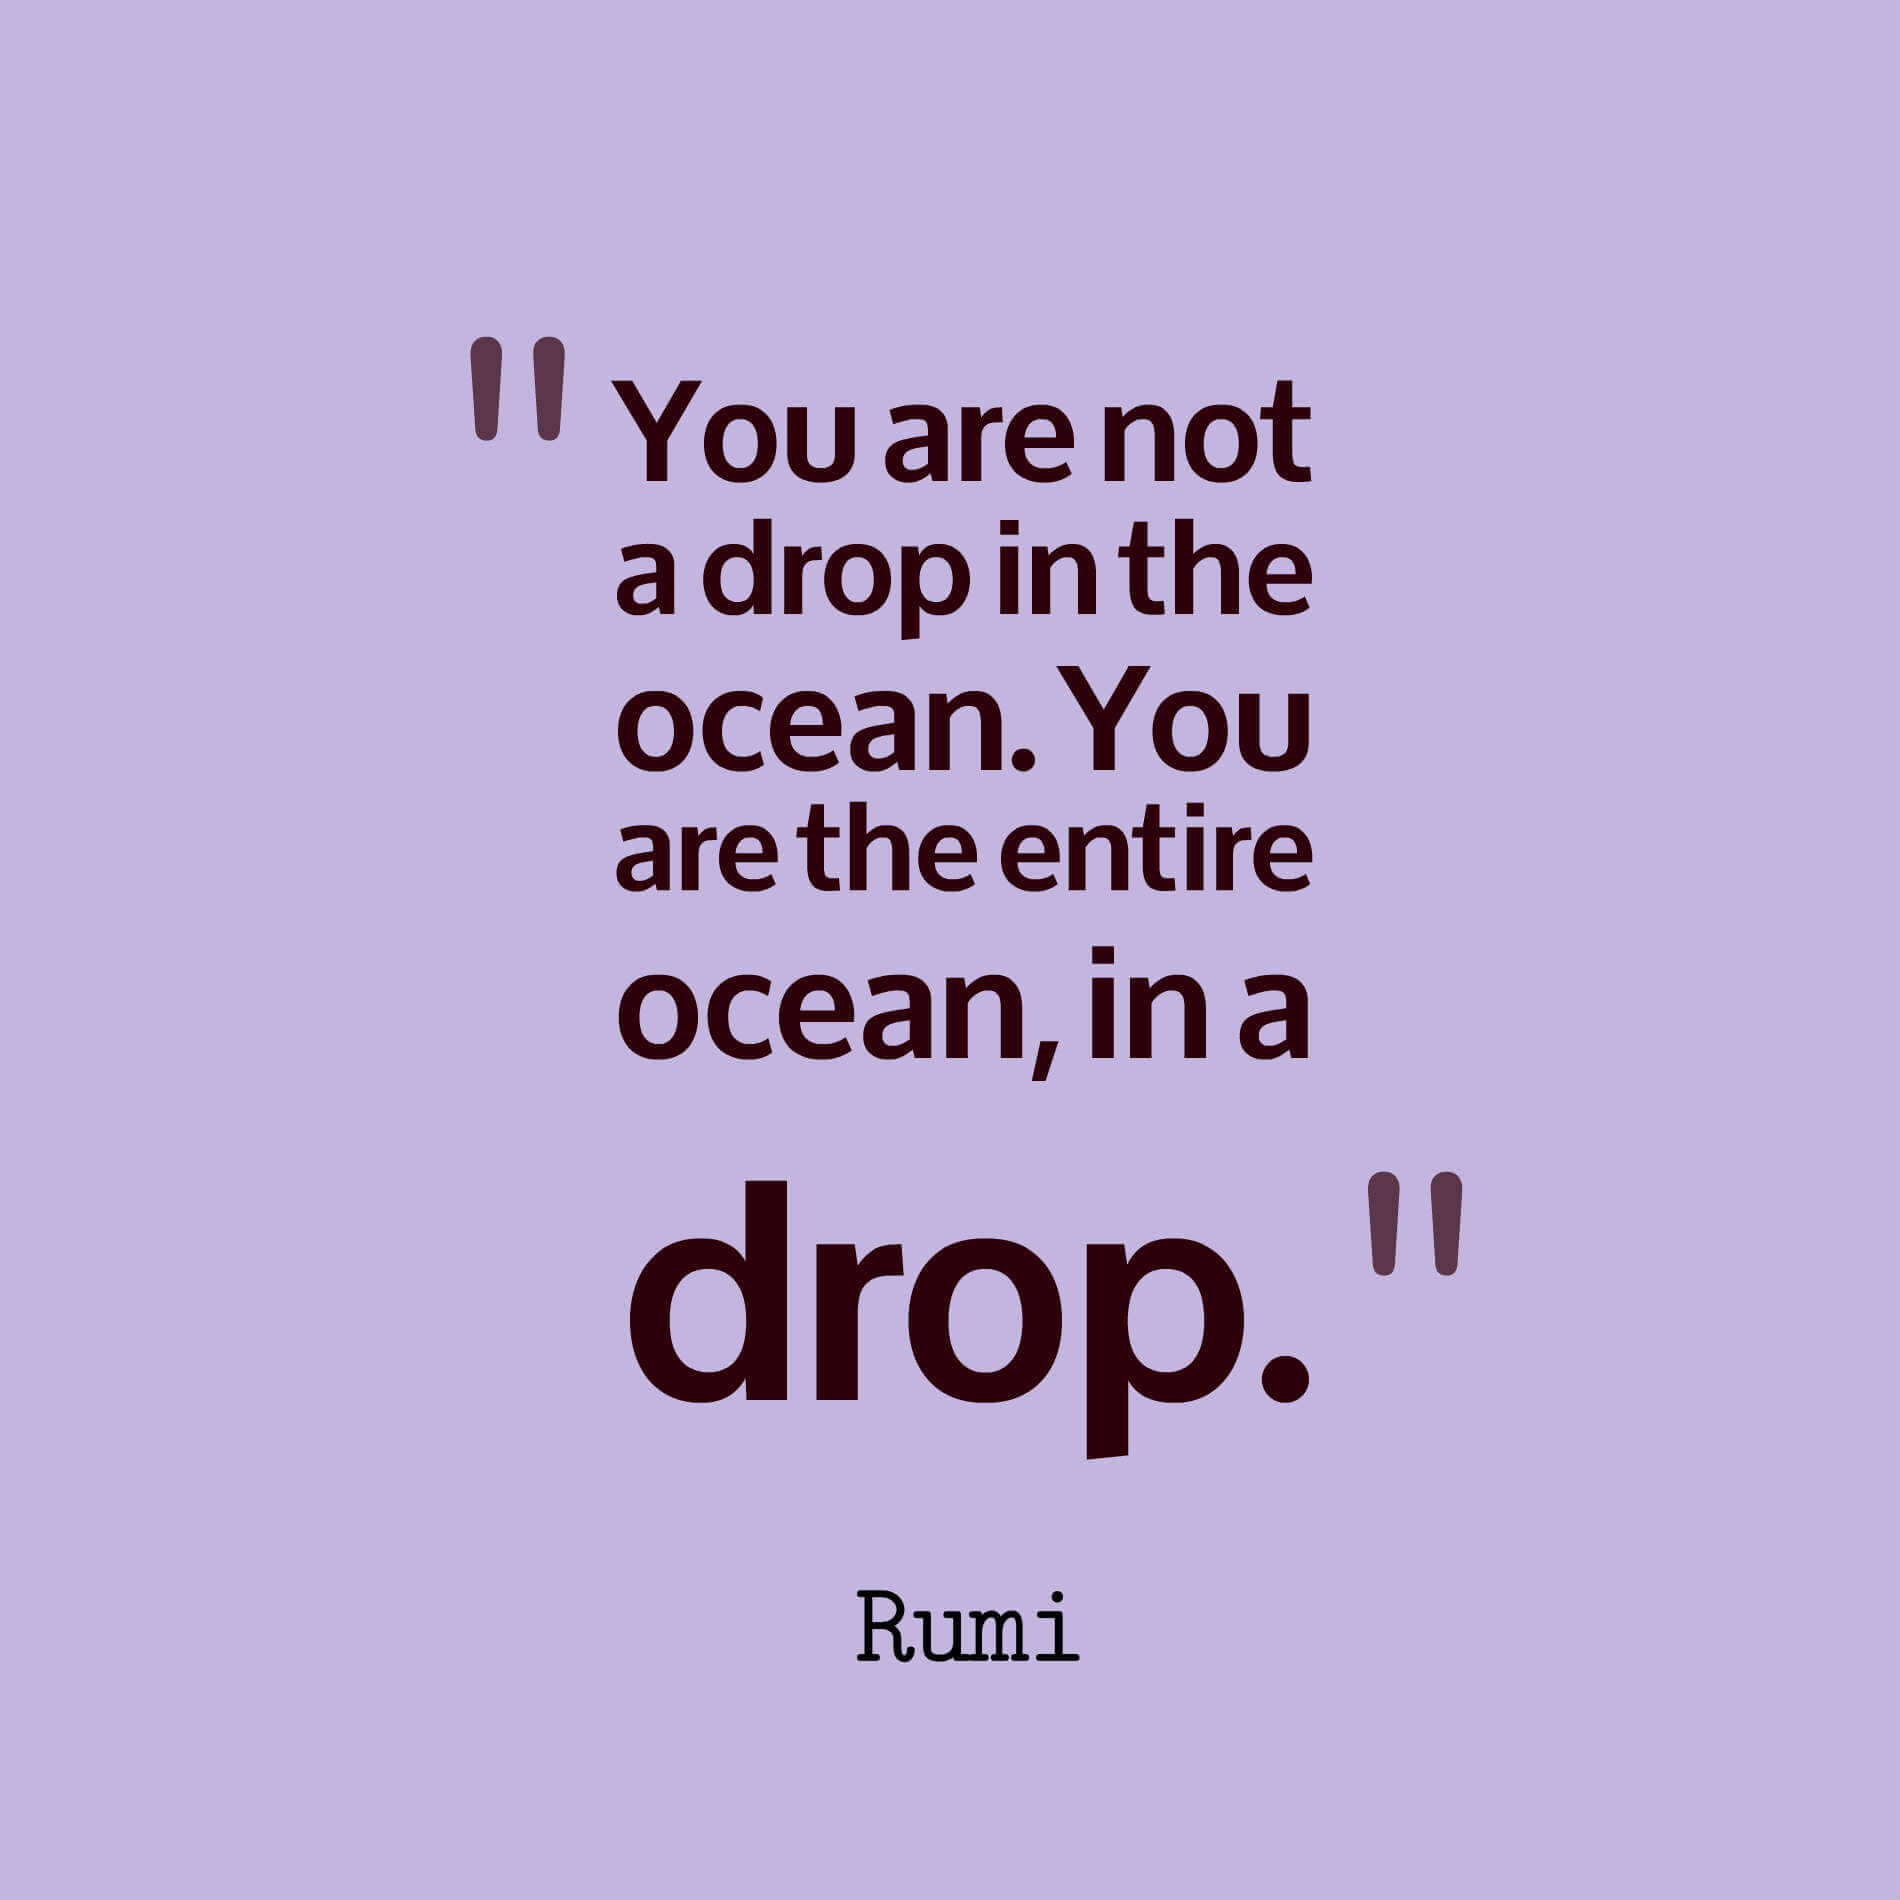 You are not a drop in the ocean. You are the entire ocean, in a drop. - rumi quotes